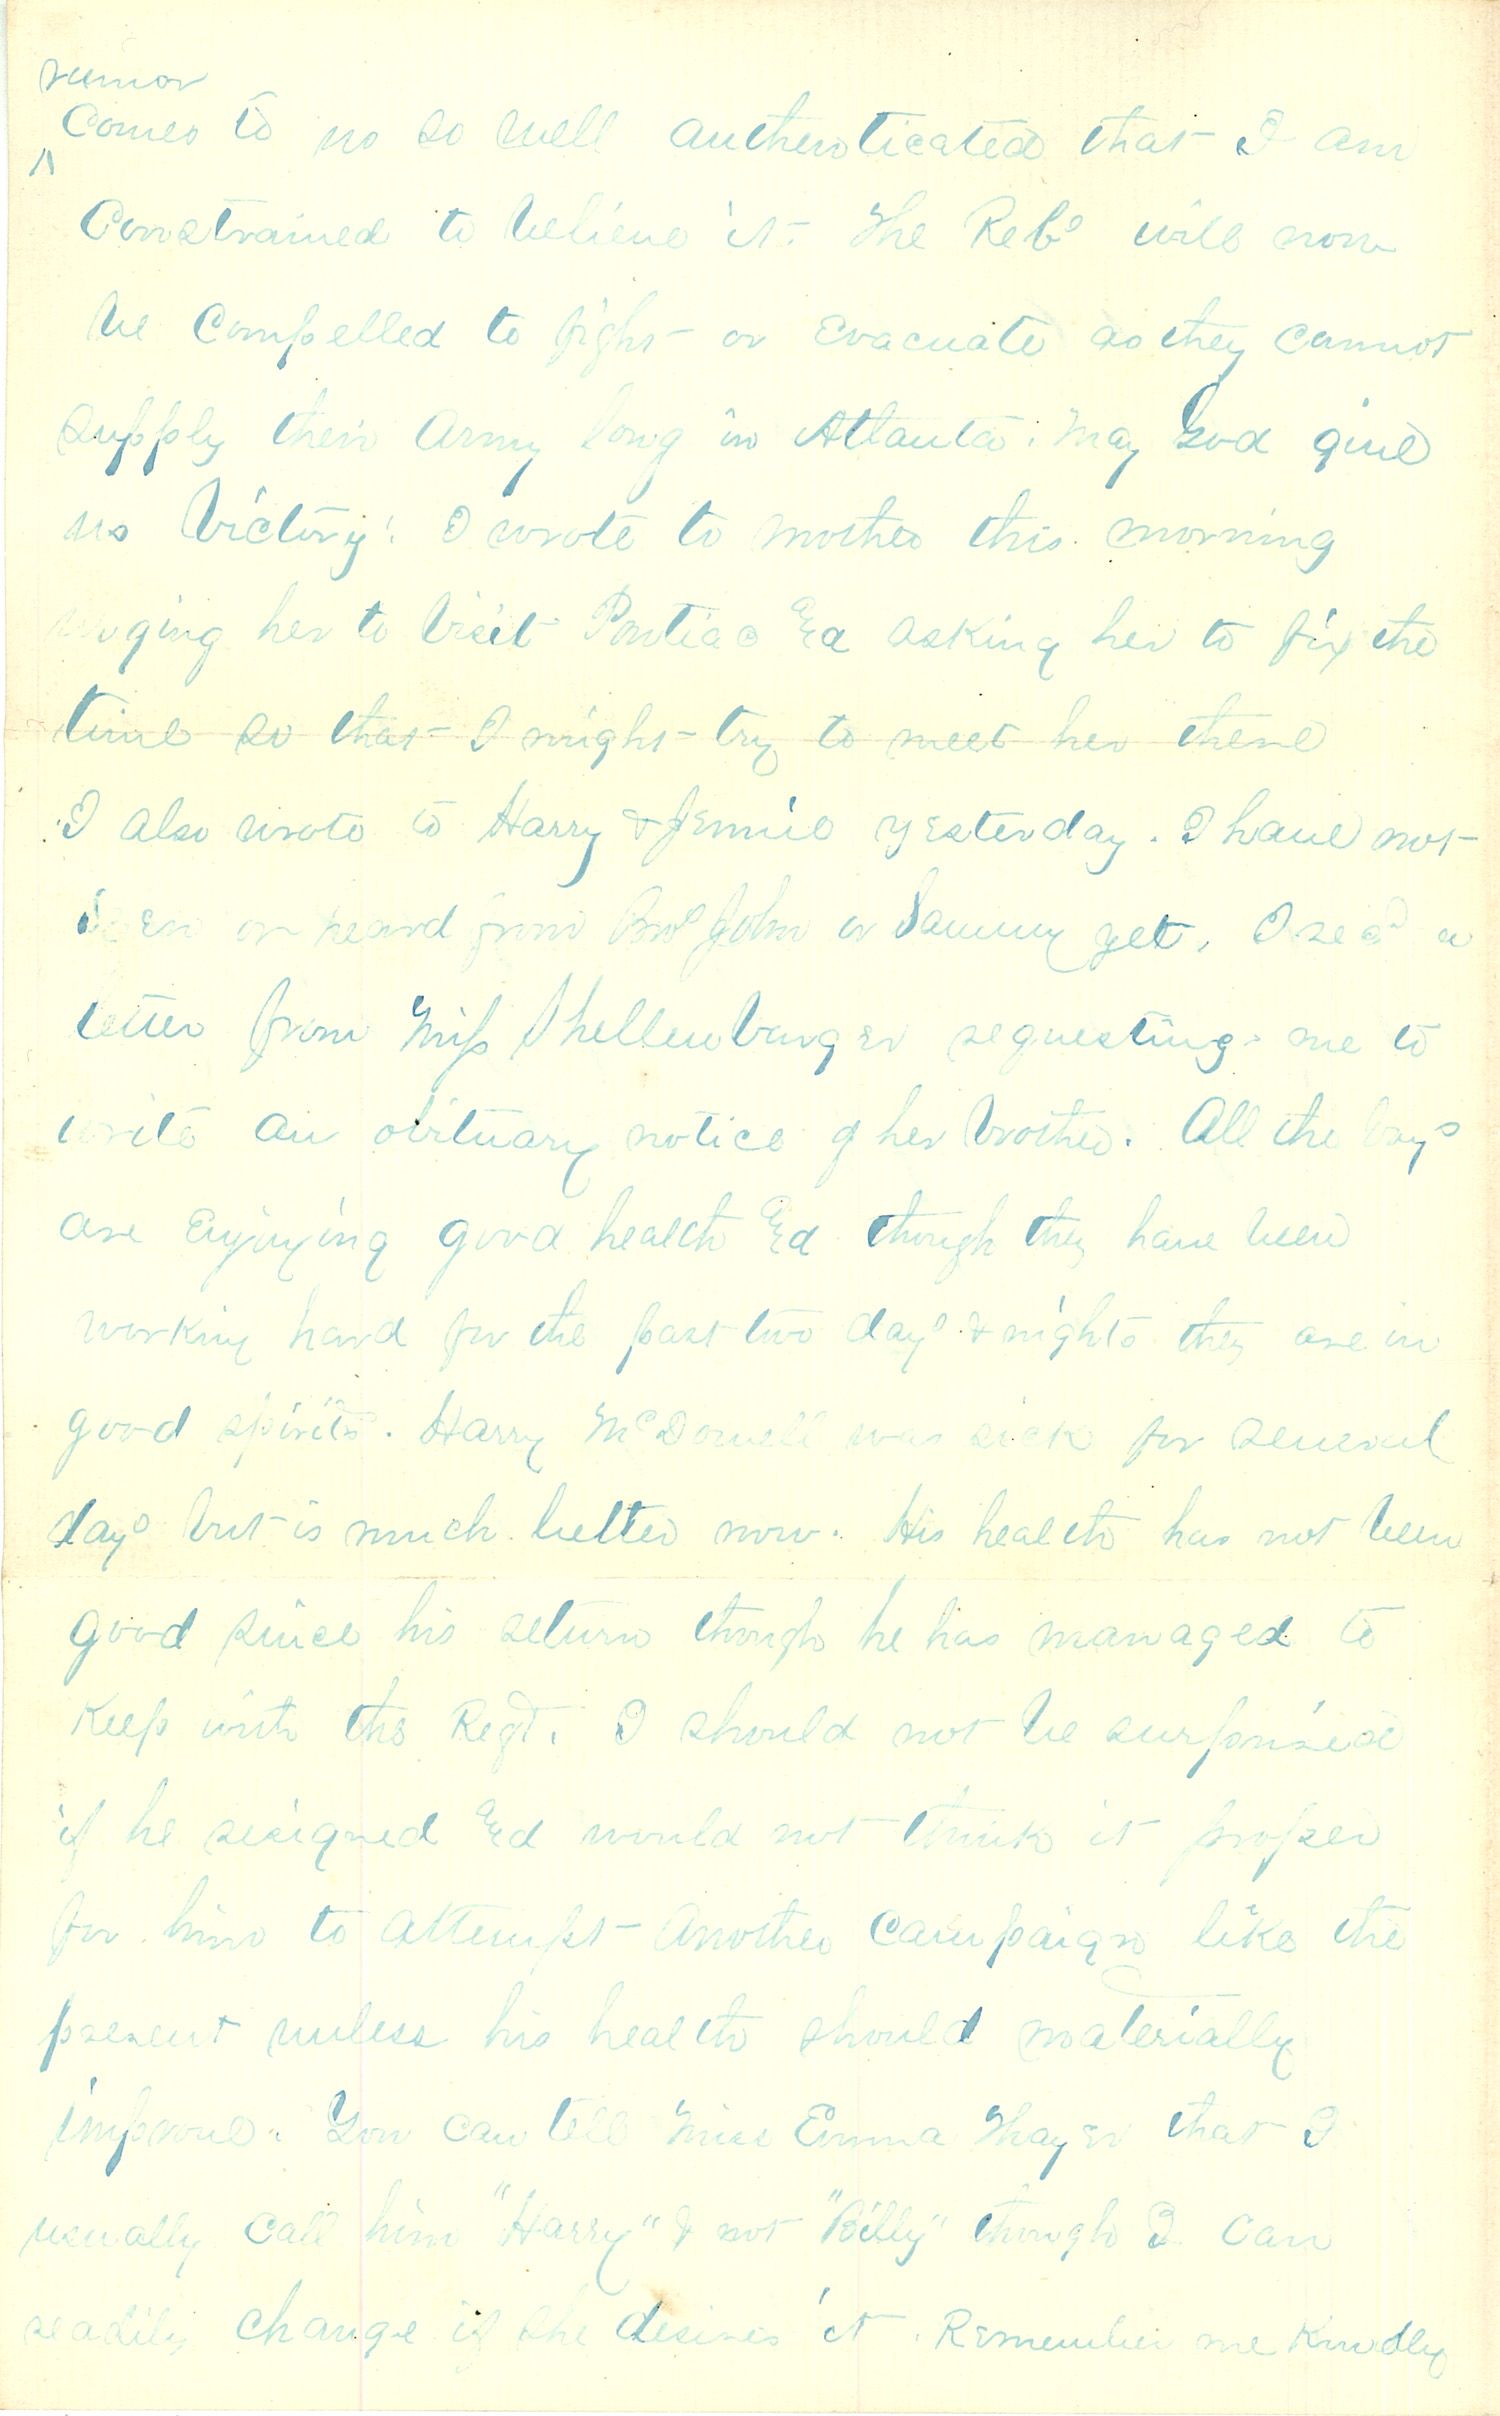 Joseph Culver Letter, August 5, 1864, Page 2